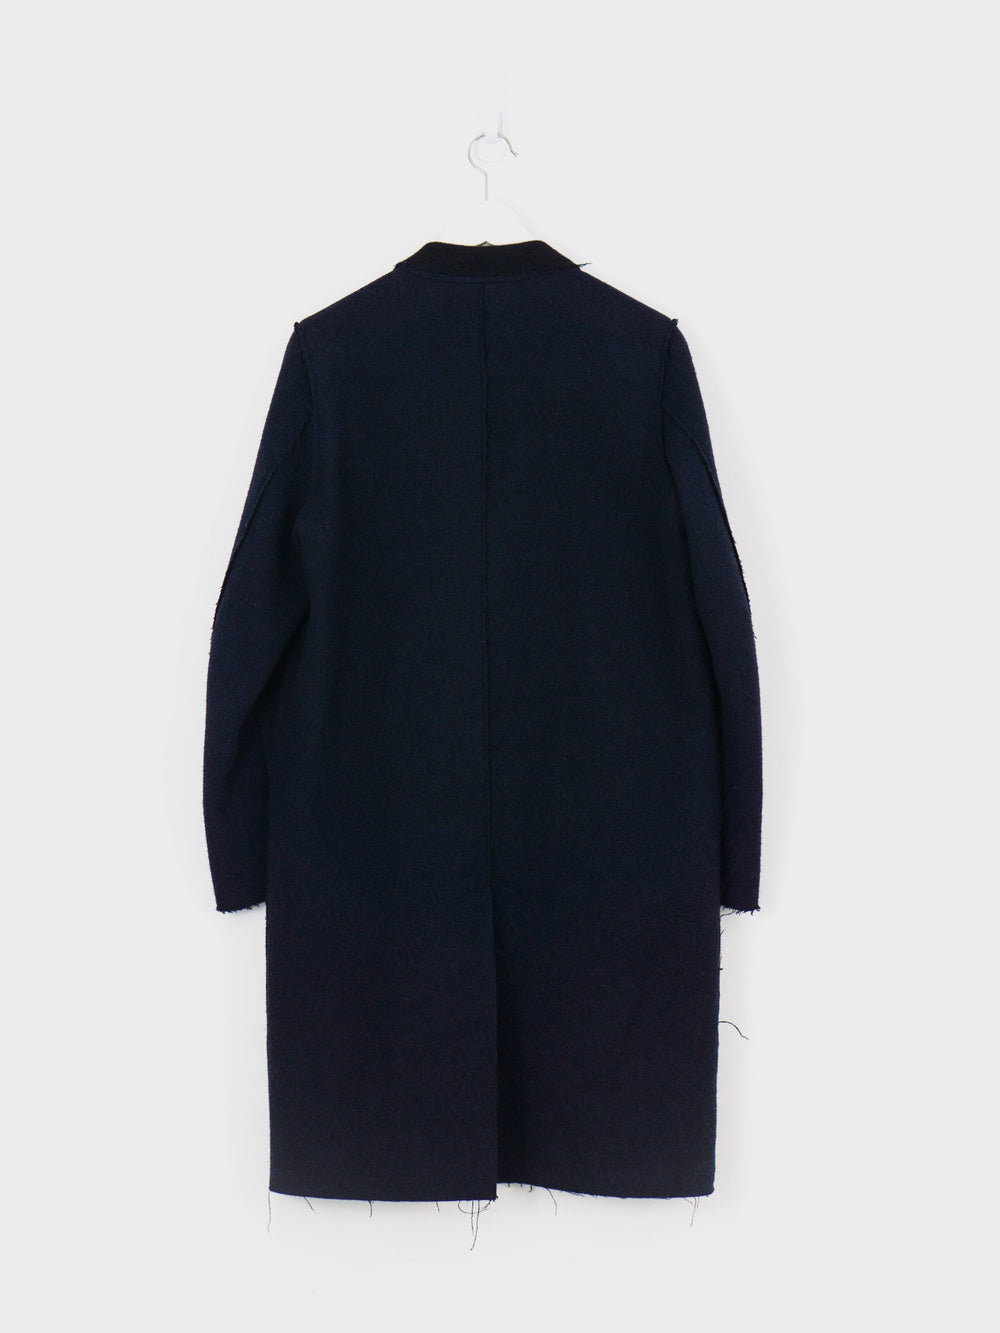 Undercover AW14 Double-Breasted Unfinished Eggshell Coat